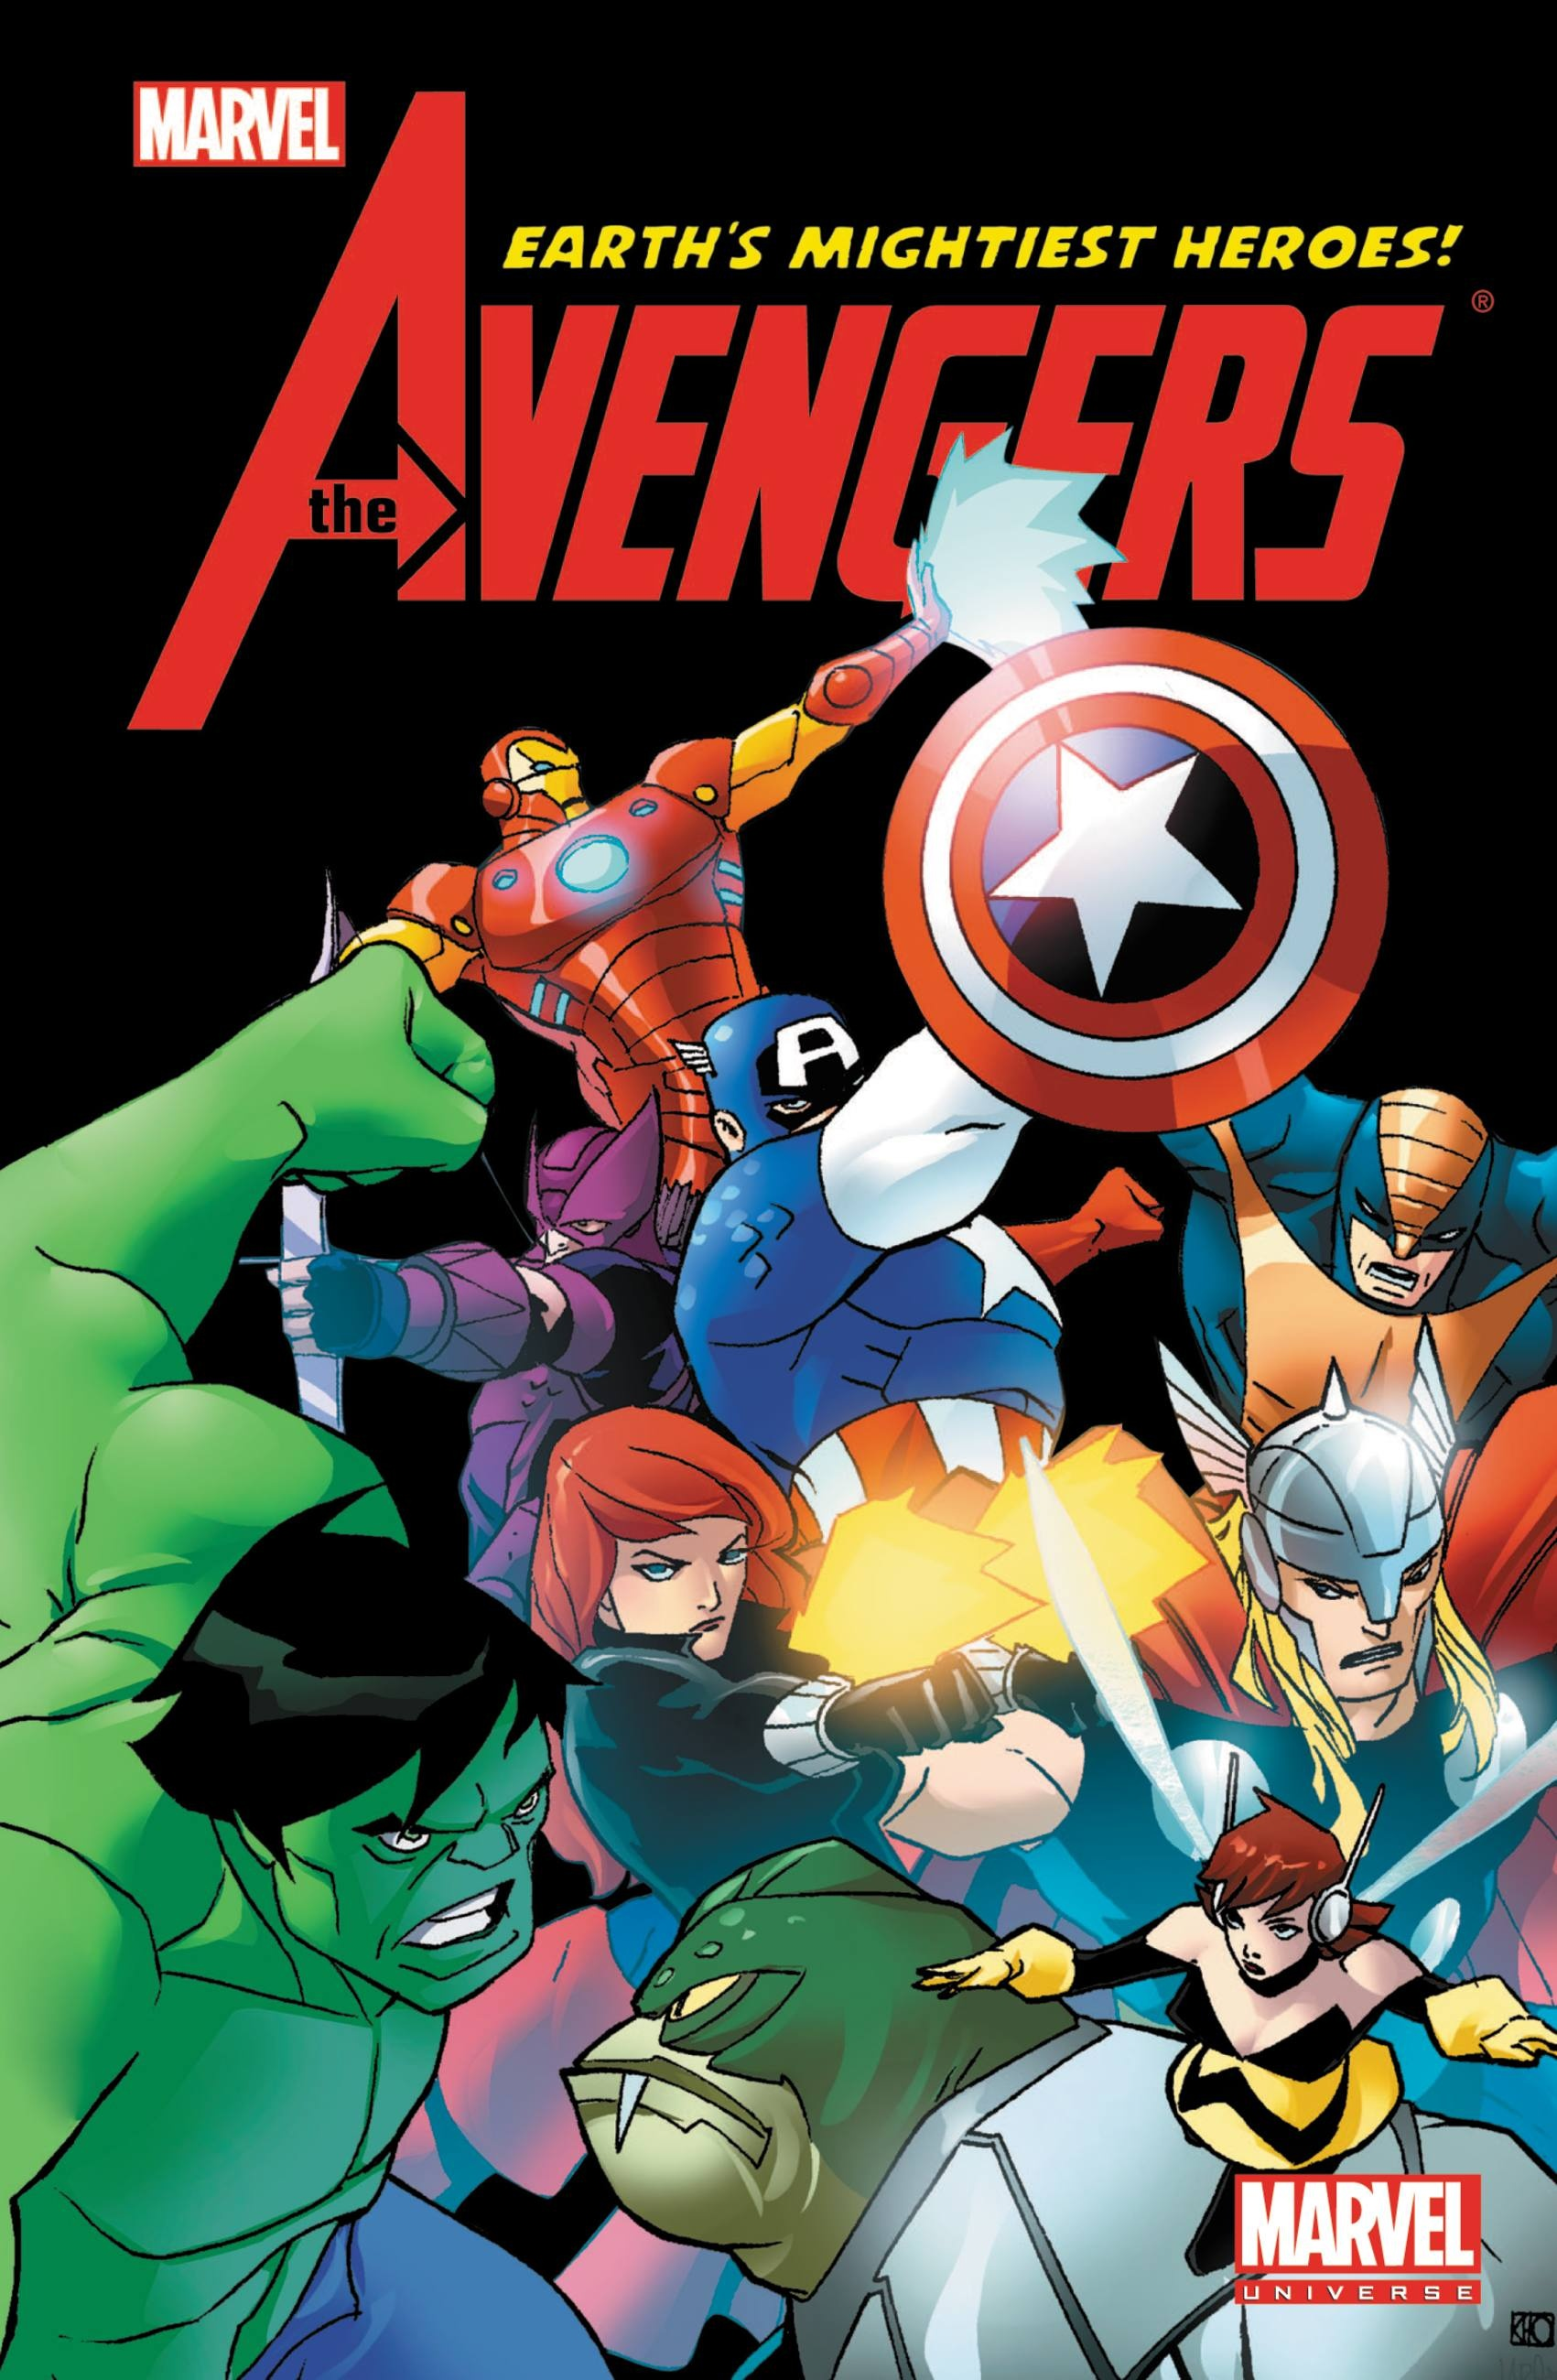 Marvel Universe Avengers Earth's Mightiest Heroes - Volume 2 marvel universe by chris claremont omnibus